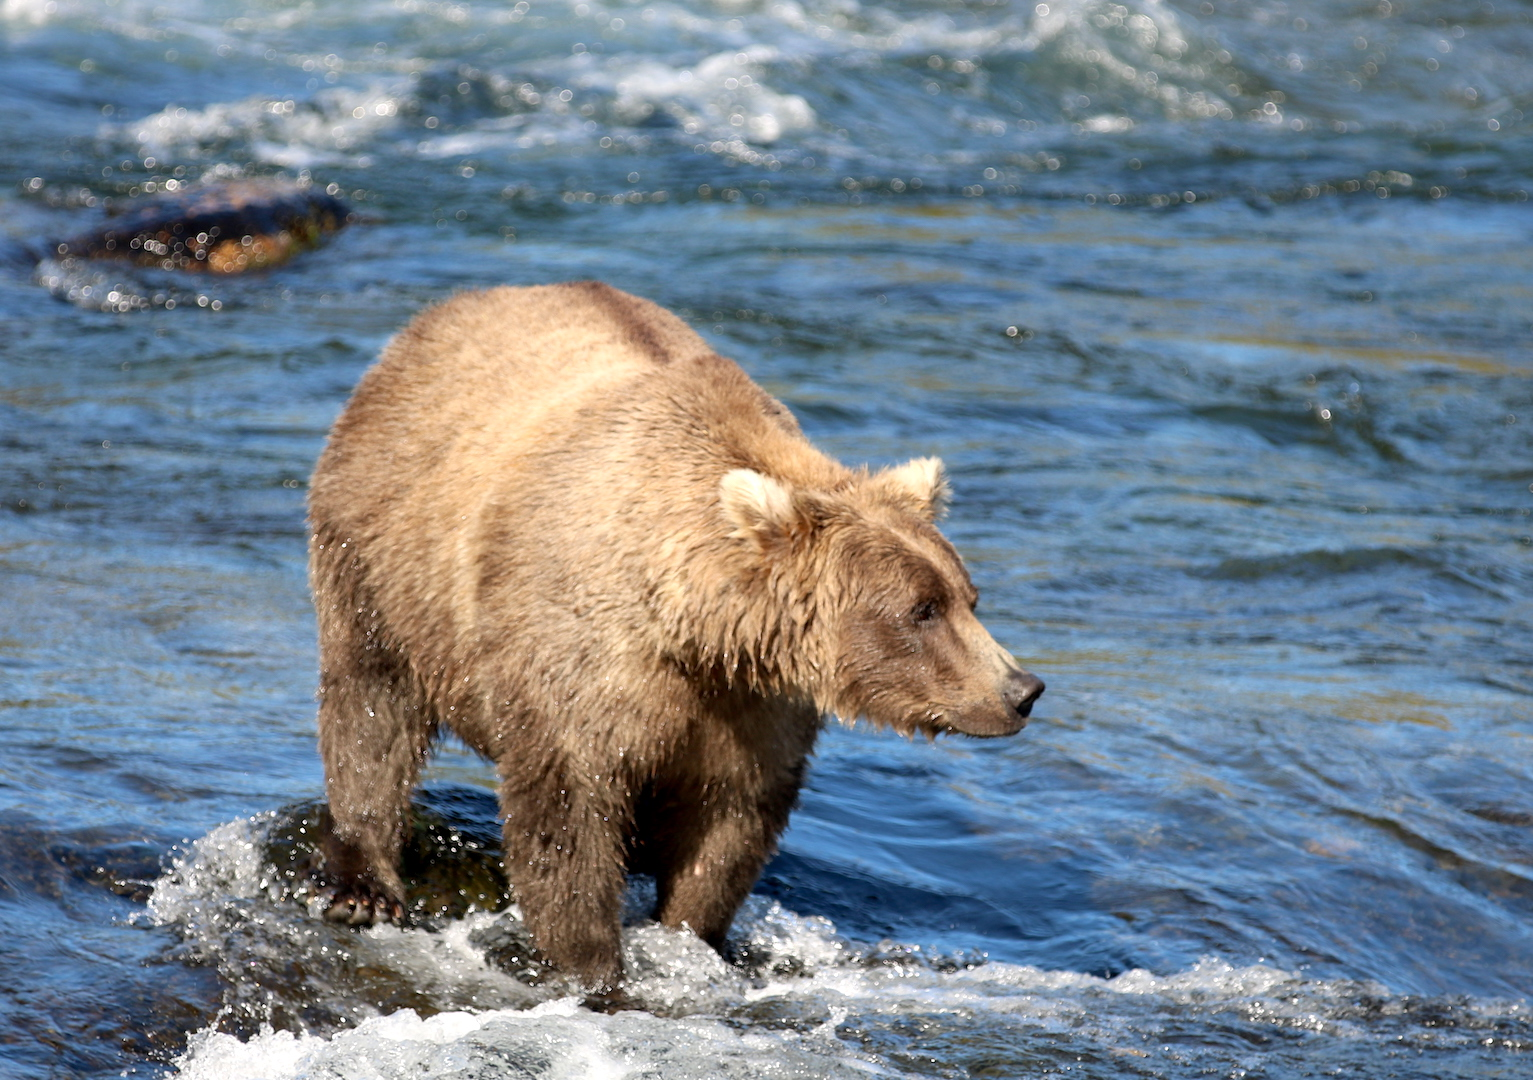 bear with blond ears and blond coat standing in water